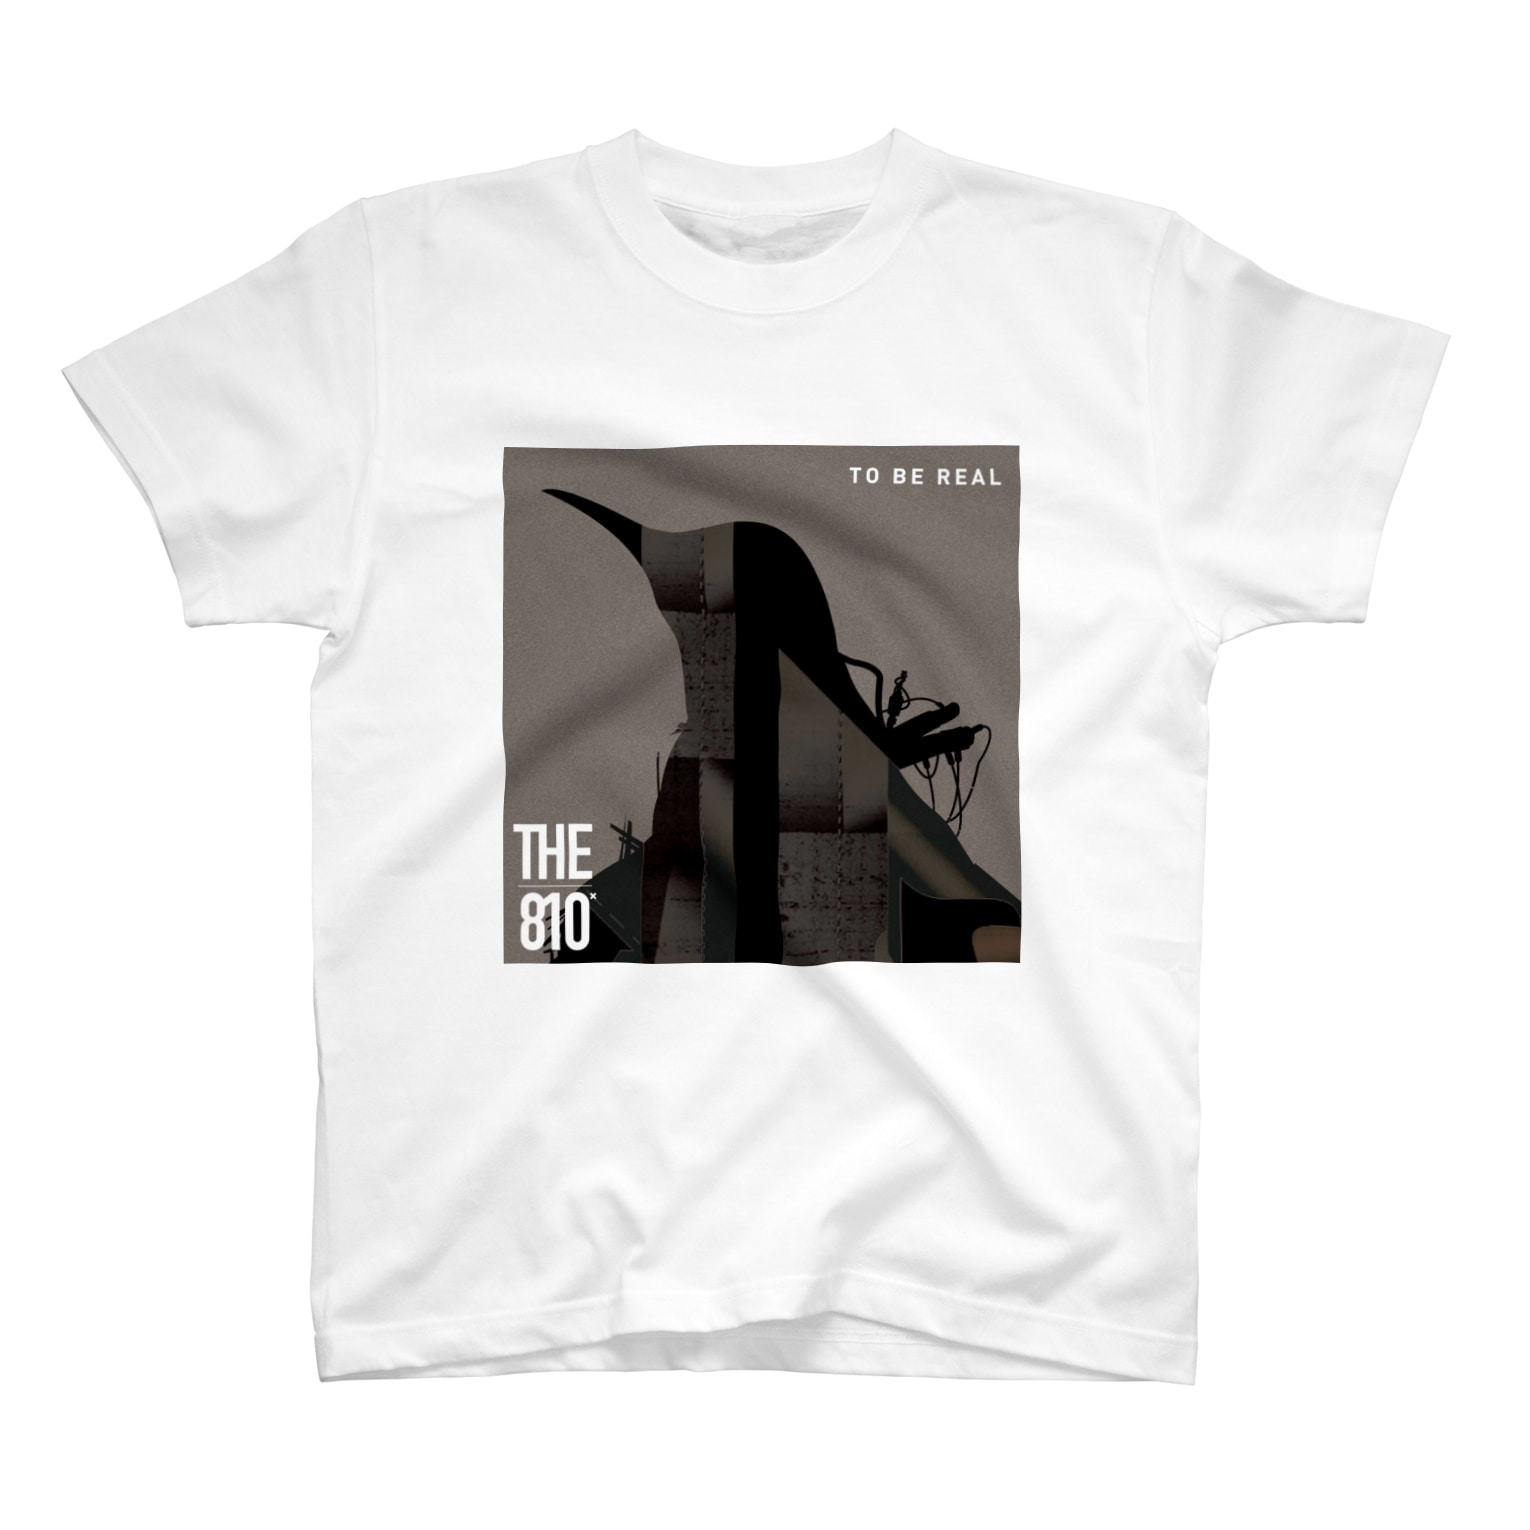 THE810xのTO BE REAL Tシャツ